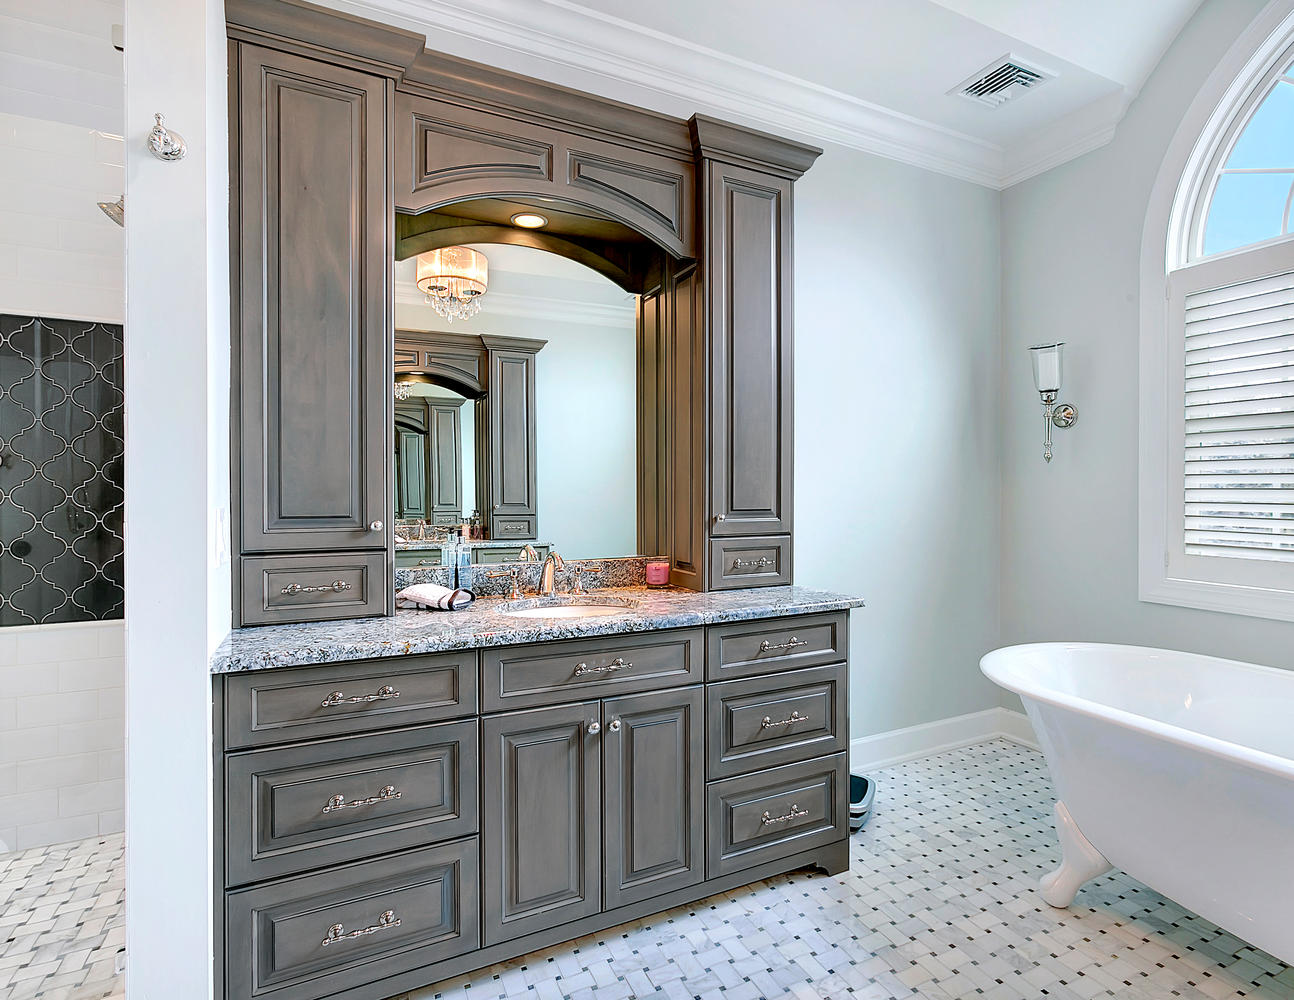 Custom Vanity / Bathroom Cabinetry | Design Line Kitchens in ...